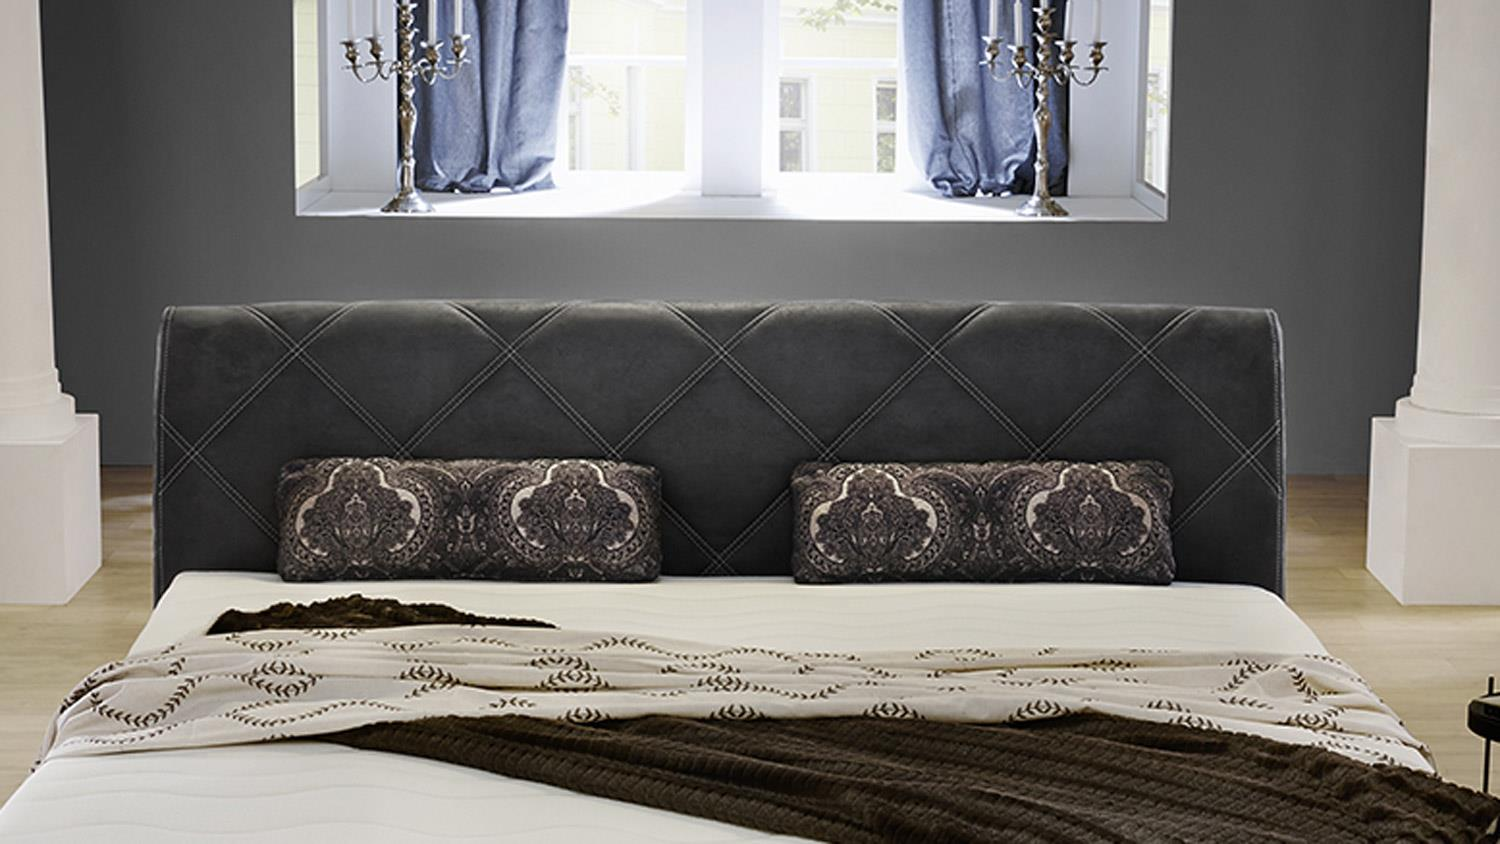 boxspringbett rebecca schlafzimmer bett antikoptik grau. Black Bedroom Furniture Sets. Home Design Ideas